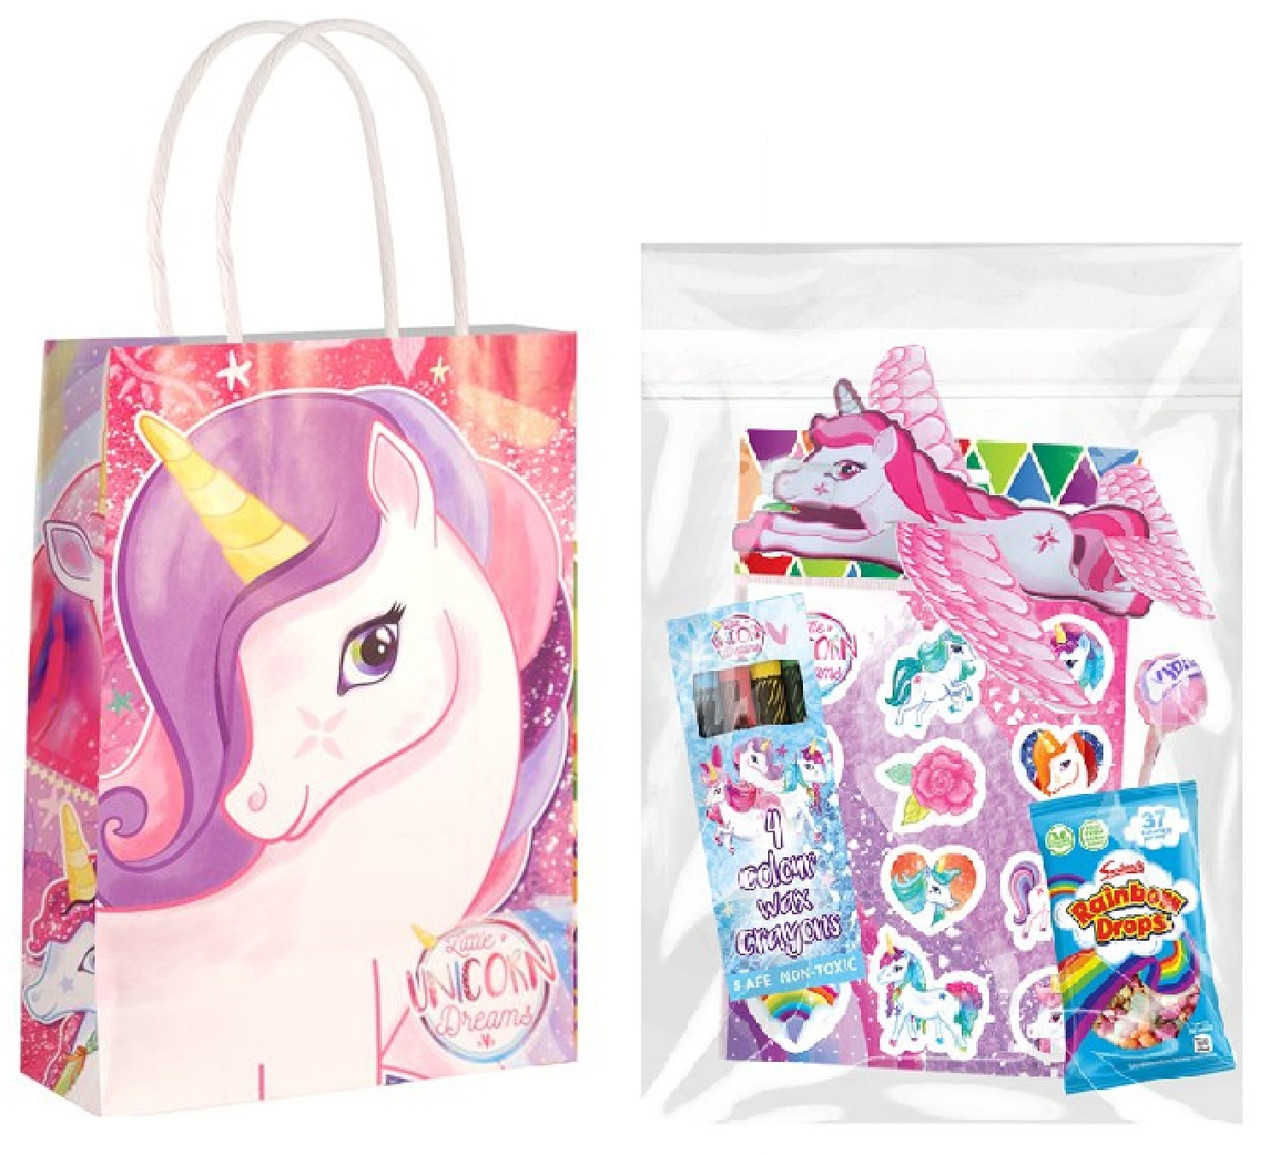 Gift Bag Toys : Unicorn filled party bags for fancy me limited